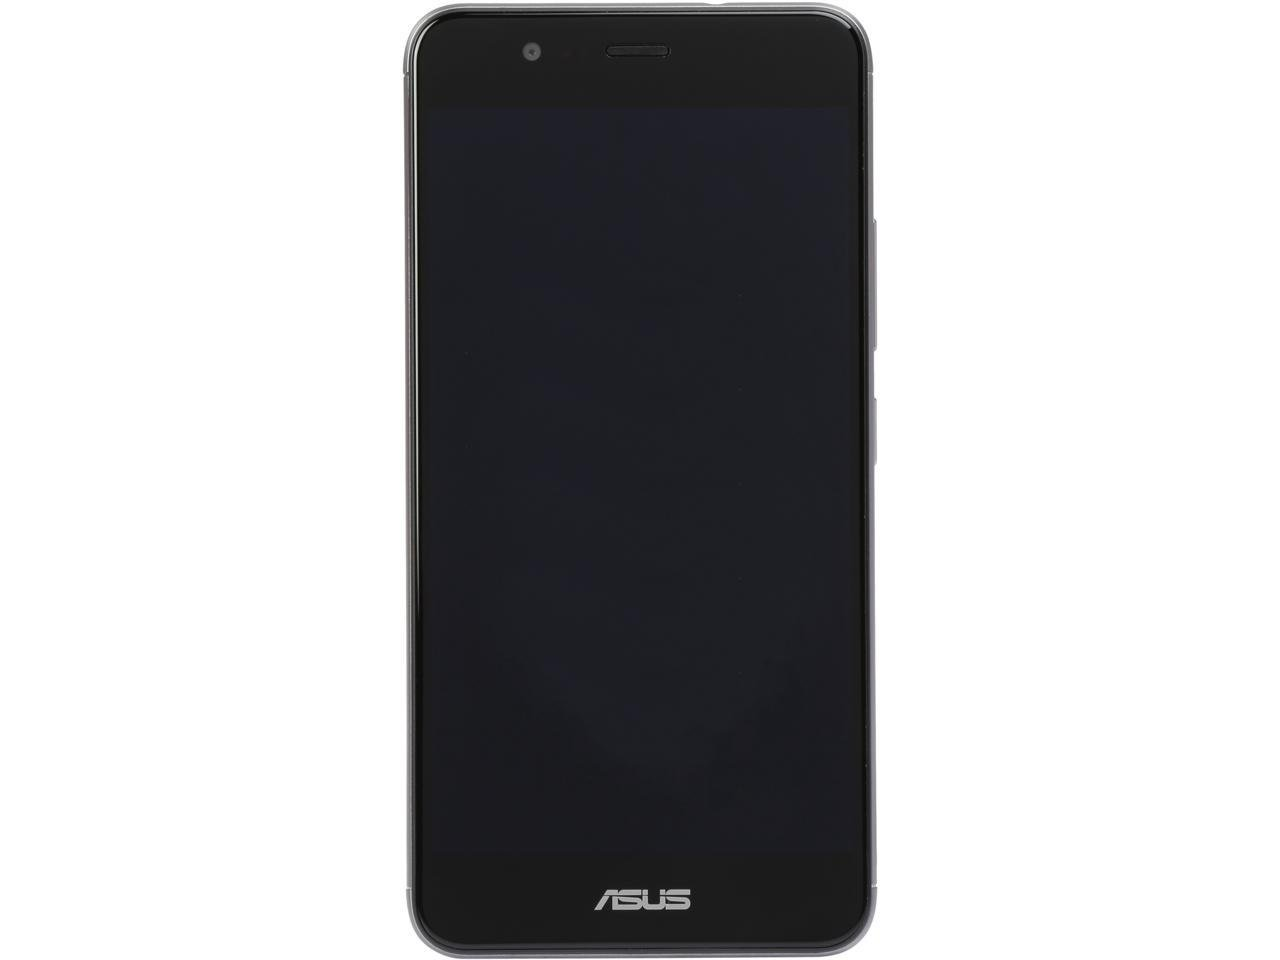 ASUS ZenFone 3 MAX ZC520TL Smartphone, 5.2-inch, 16GB (Titanium Gray) (Certified Refurbished) by Asus (Image #8)